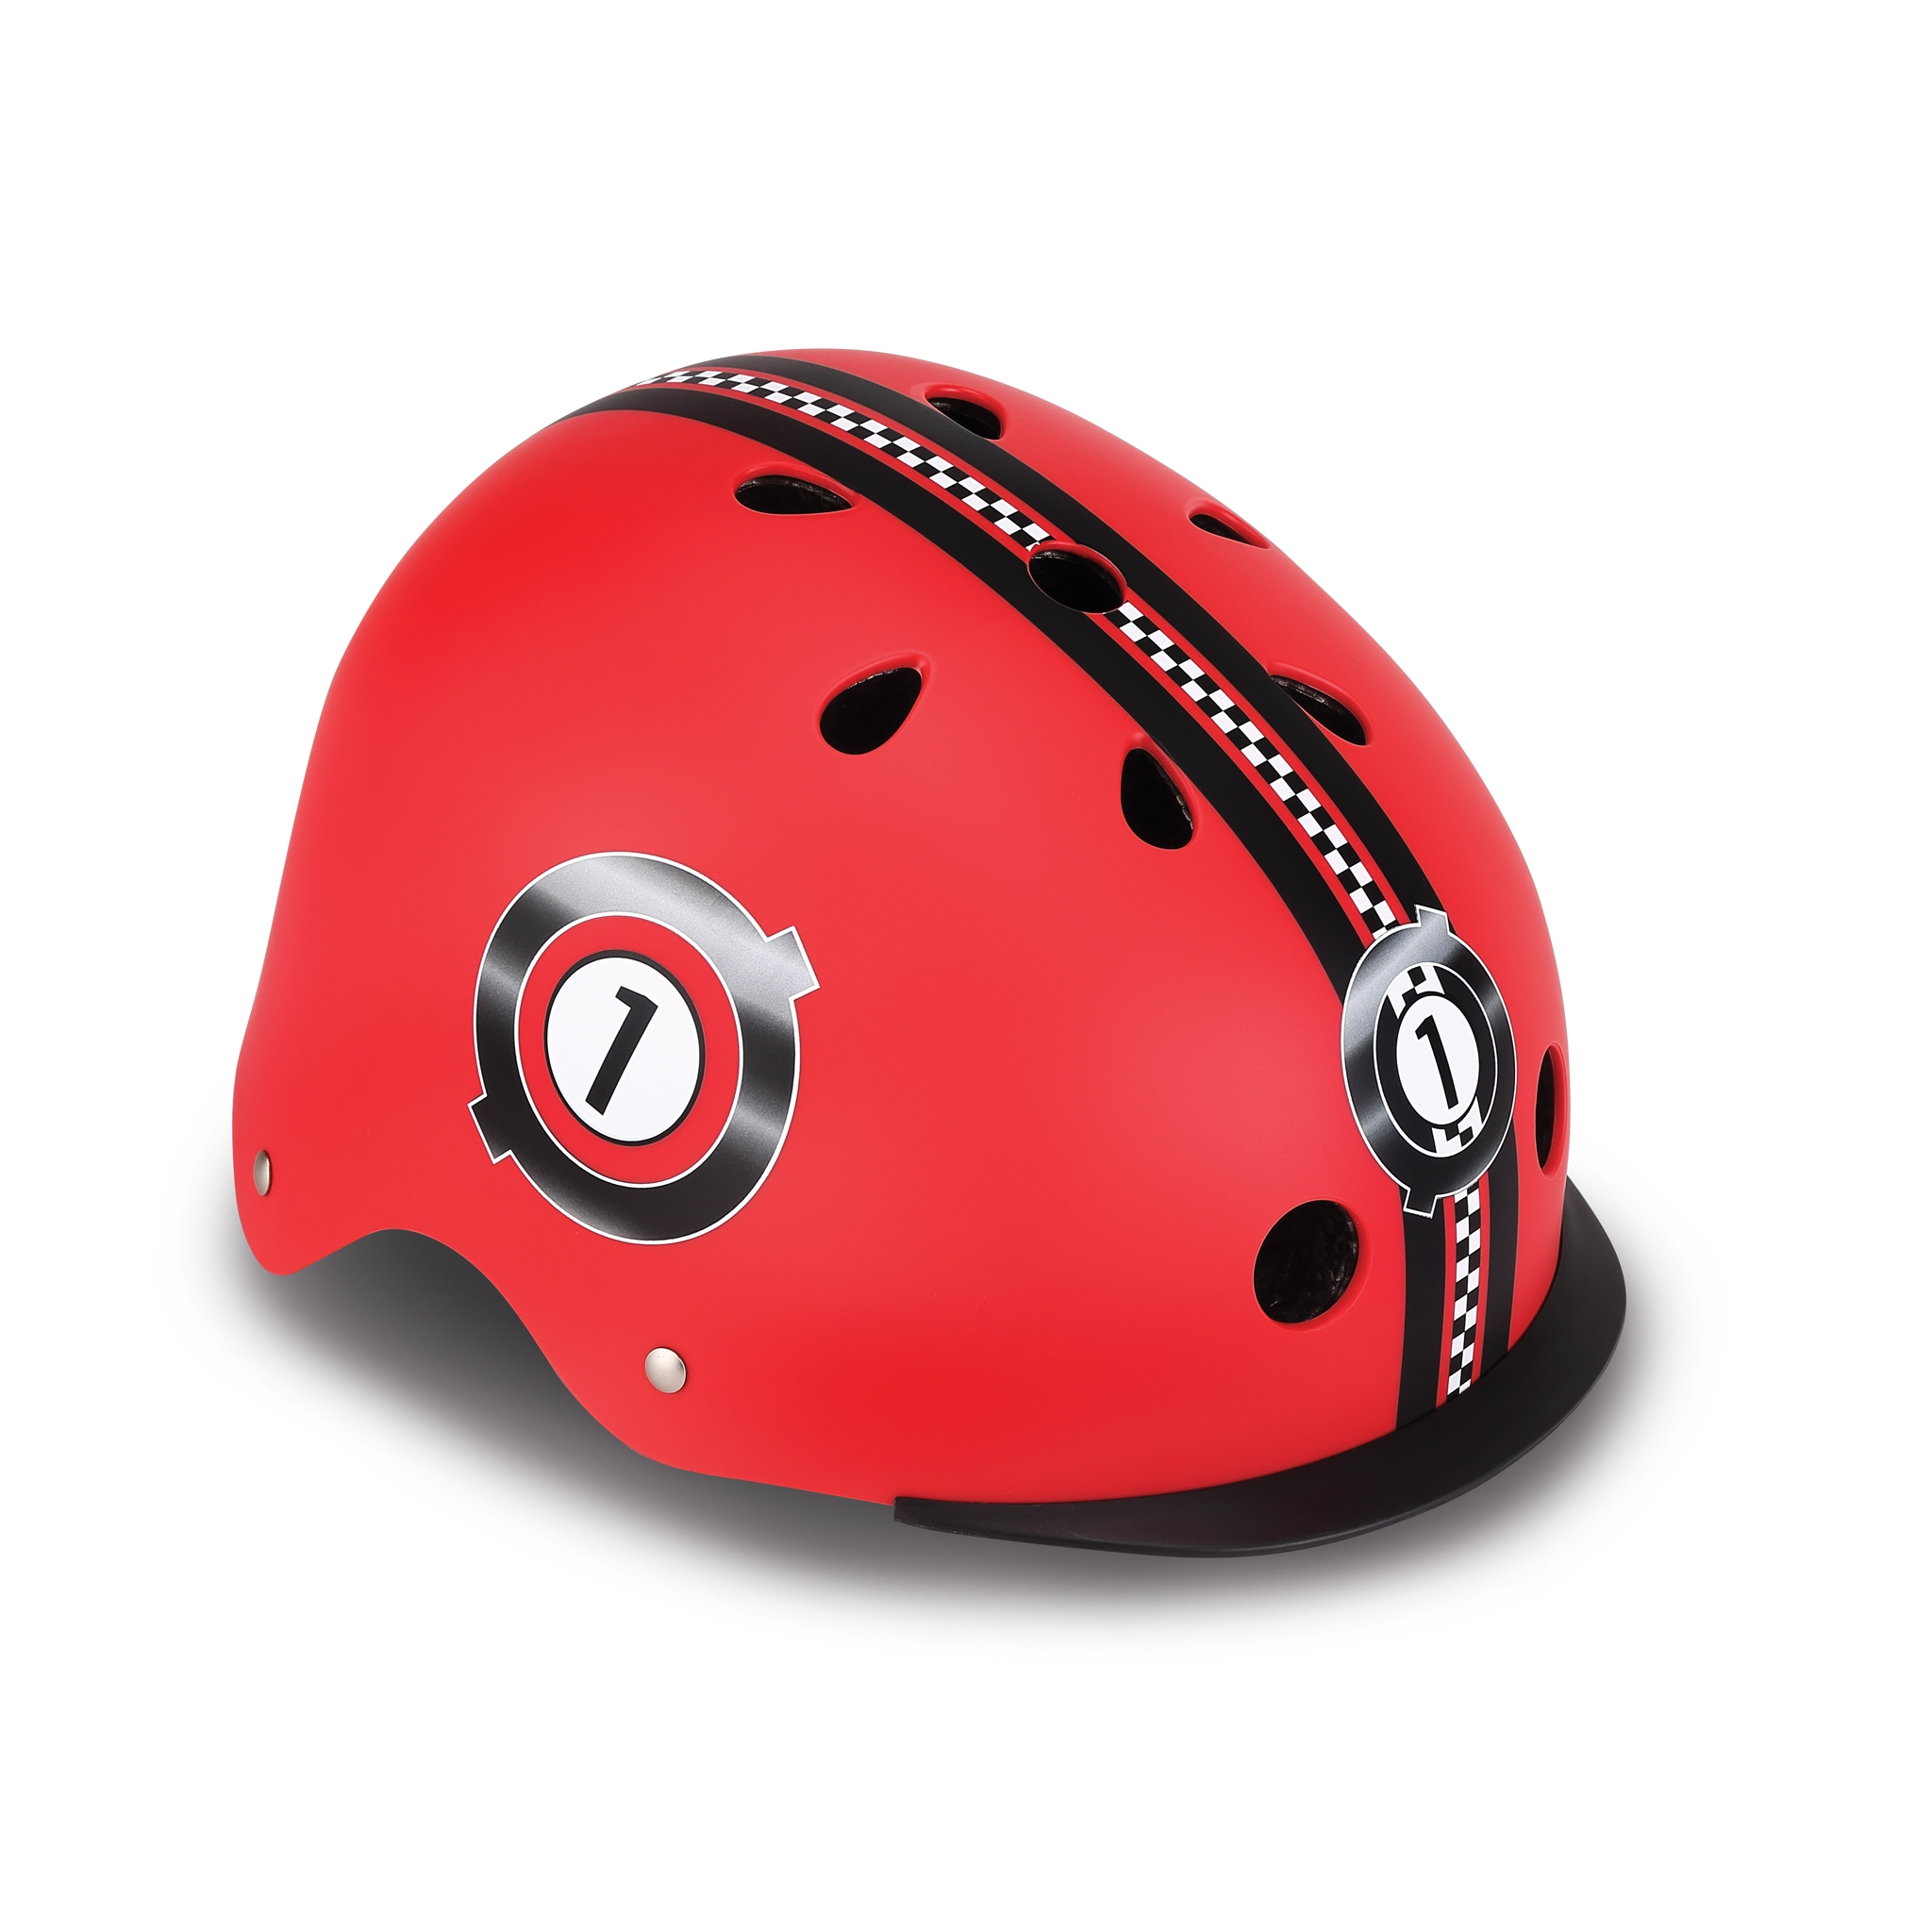 ELITE-helmets-scooter-helmets-for-kids-in-mold-polycarbonate-outer-shell-new-red 0